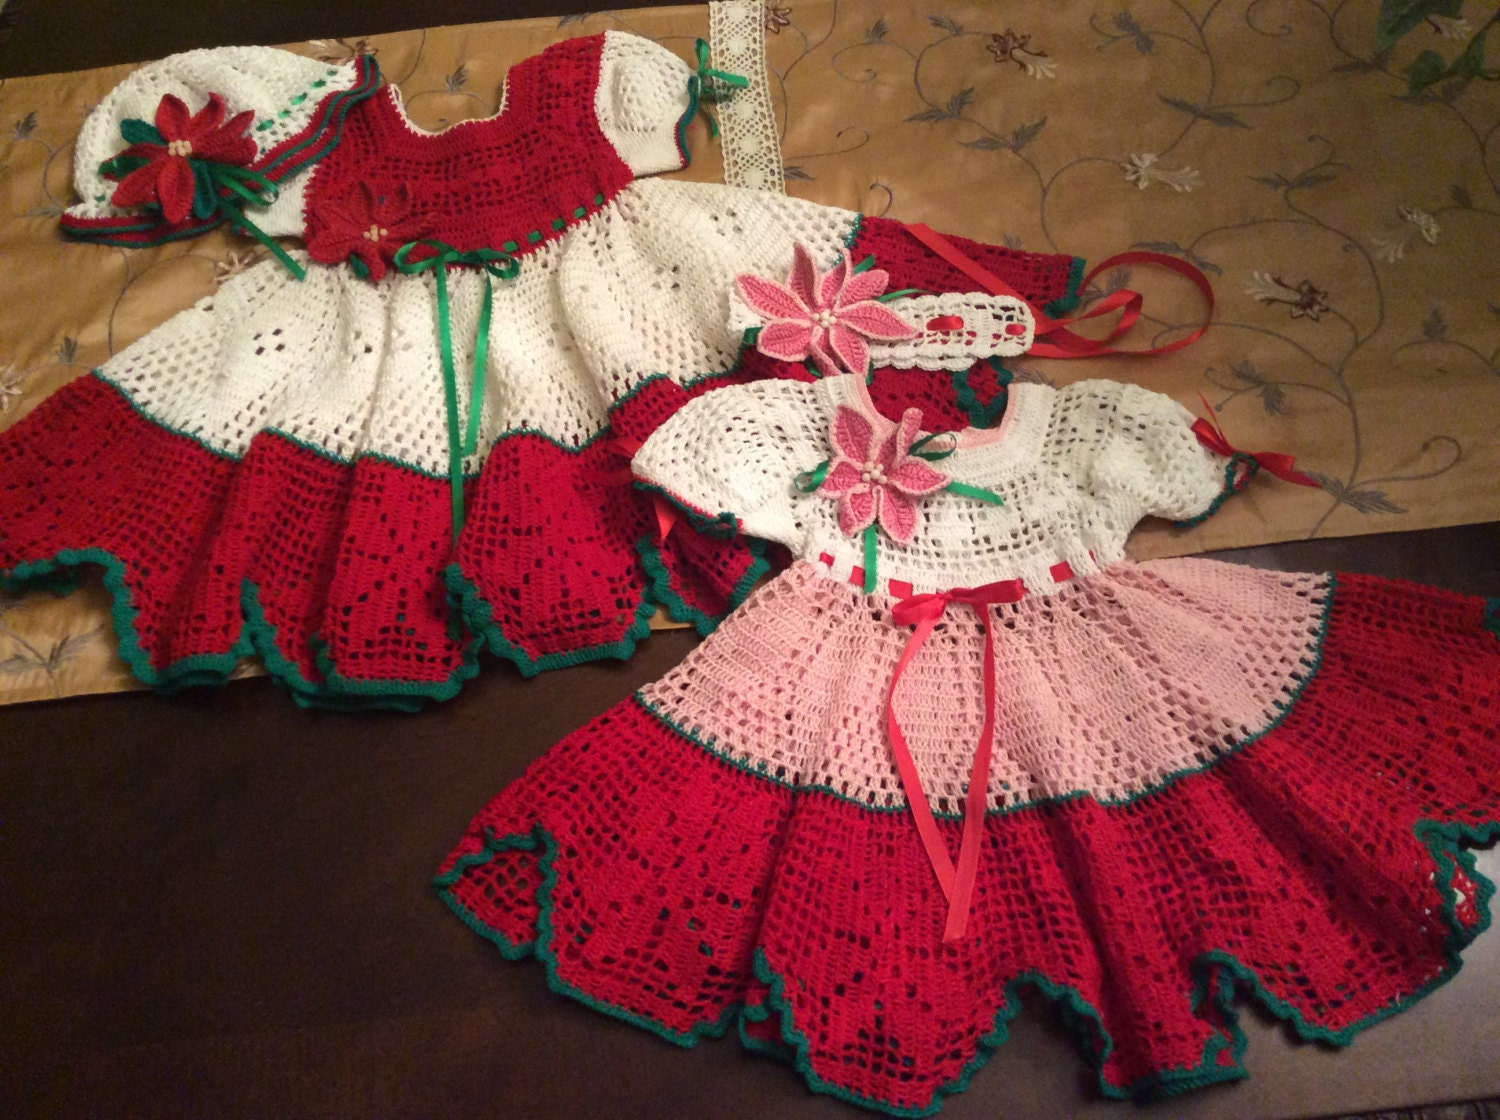 Poinsettia crochet christmas dress pattern baby pdf crochet this is a digital file bankloansurffo Gallery